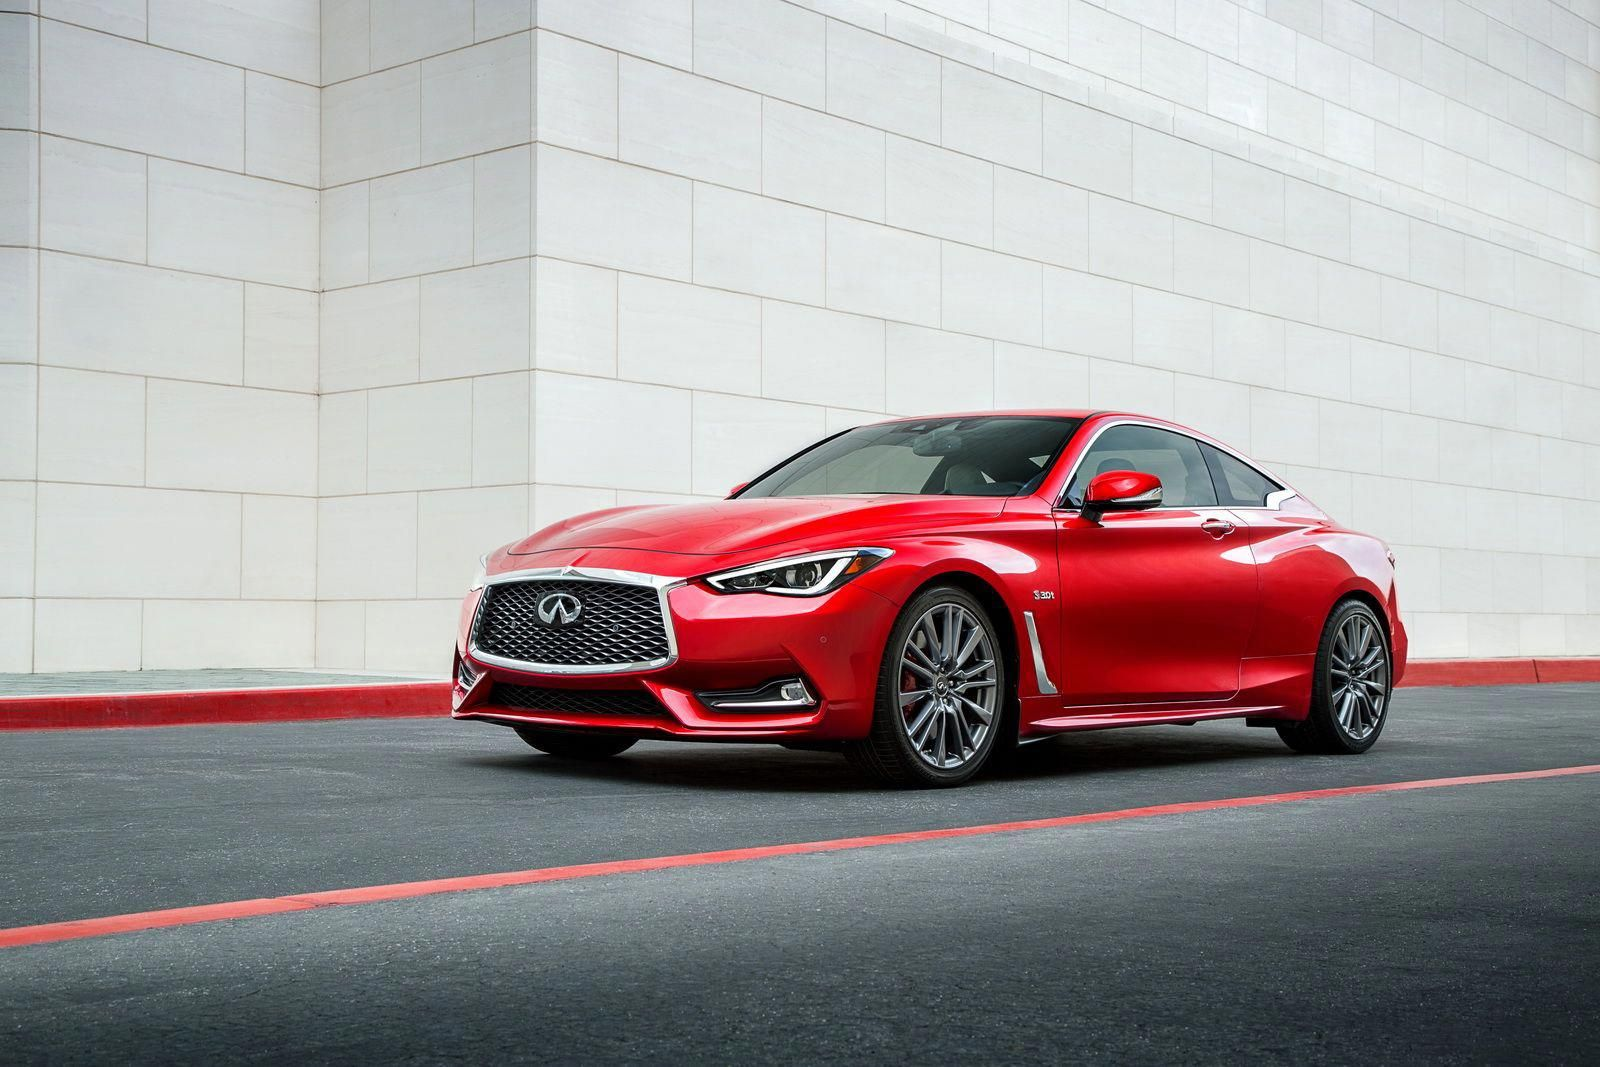 Infiniti Offers New Louder Sport Exhaust For Q60 Coupe